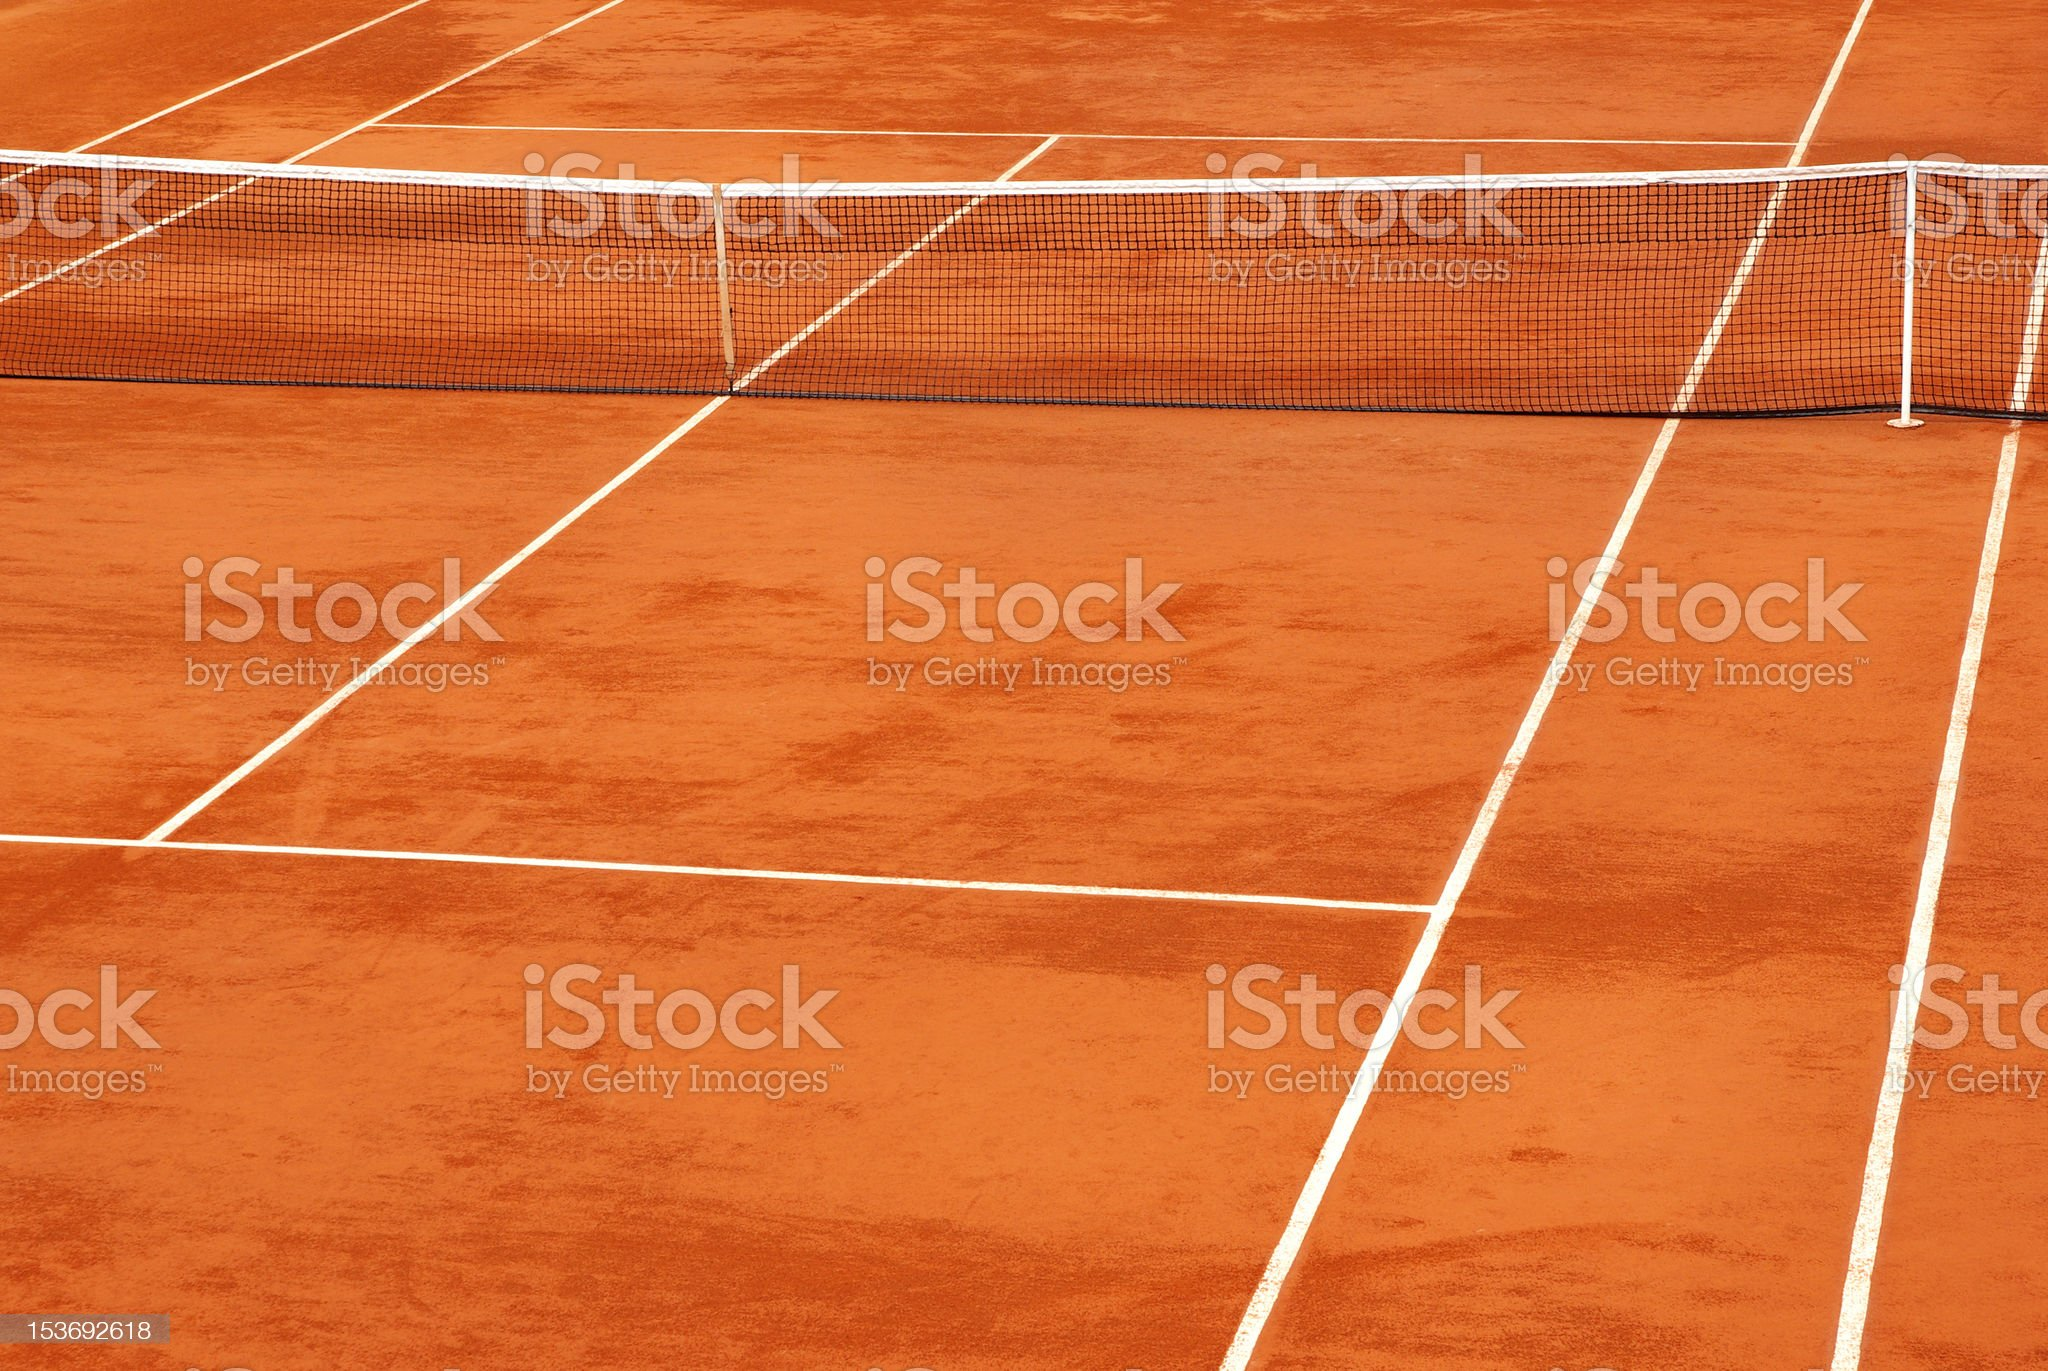 Simple image of a tennis base royalty-free stock photo